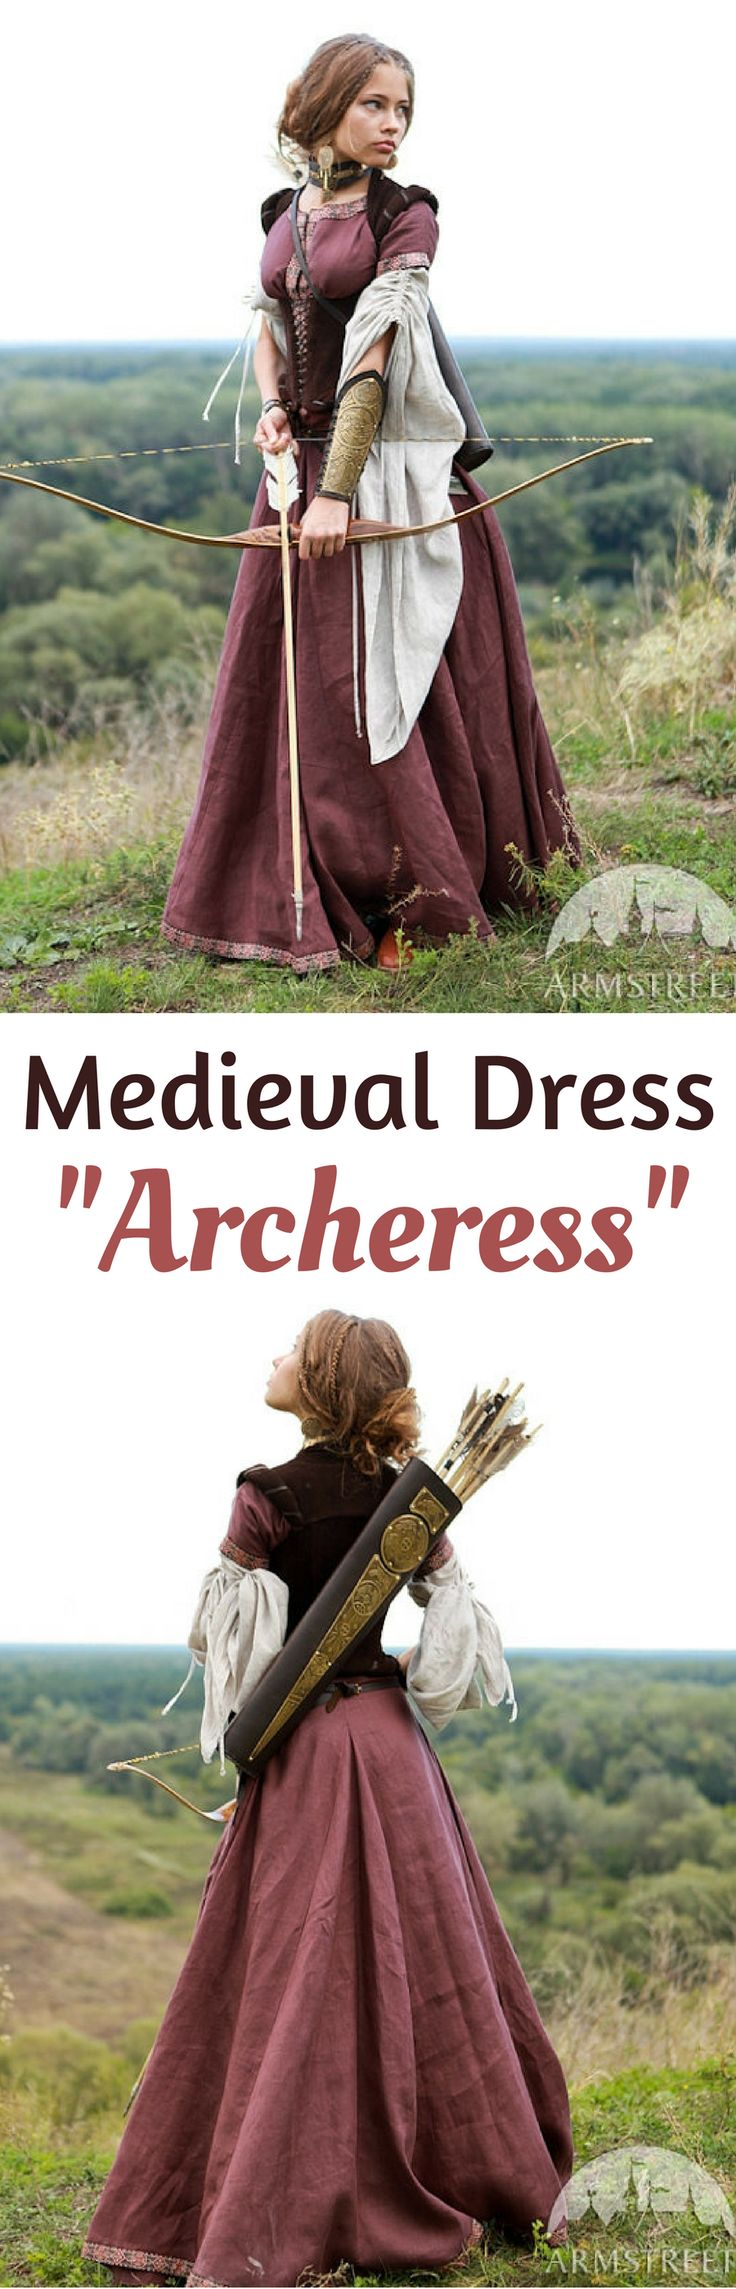 """I love this linen Medieval Renaissance Dress """"Archeress"""" with Chemise and Corset! It looks gorgeous! Available in different colors. NNT  #affiliate #medieval #Dress #beautiful #linen #burgundy #PrettyDress #gift #archer #GIFTIDEA medieval renaissance dress princesses 